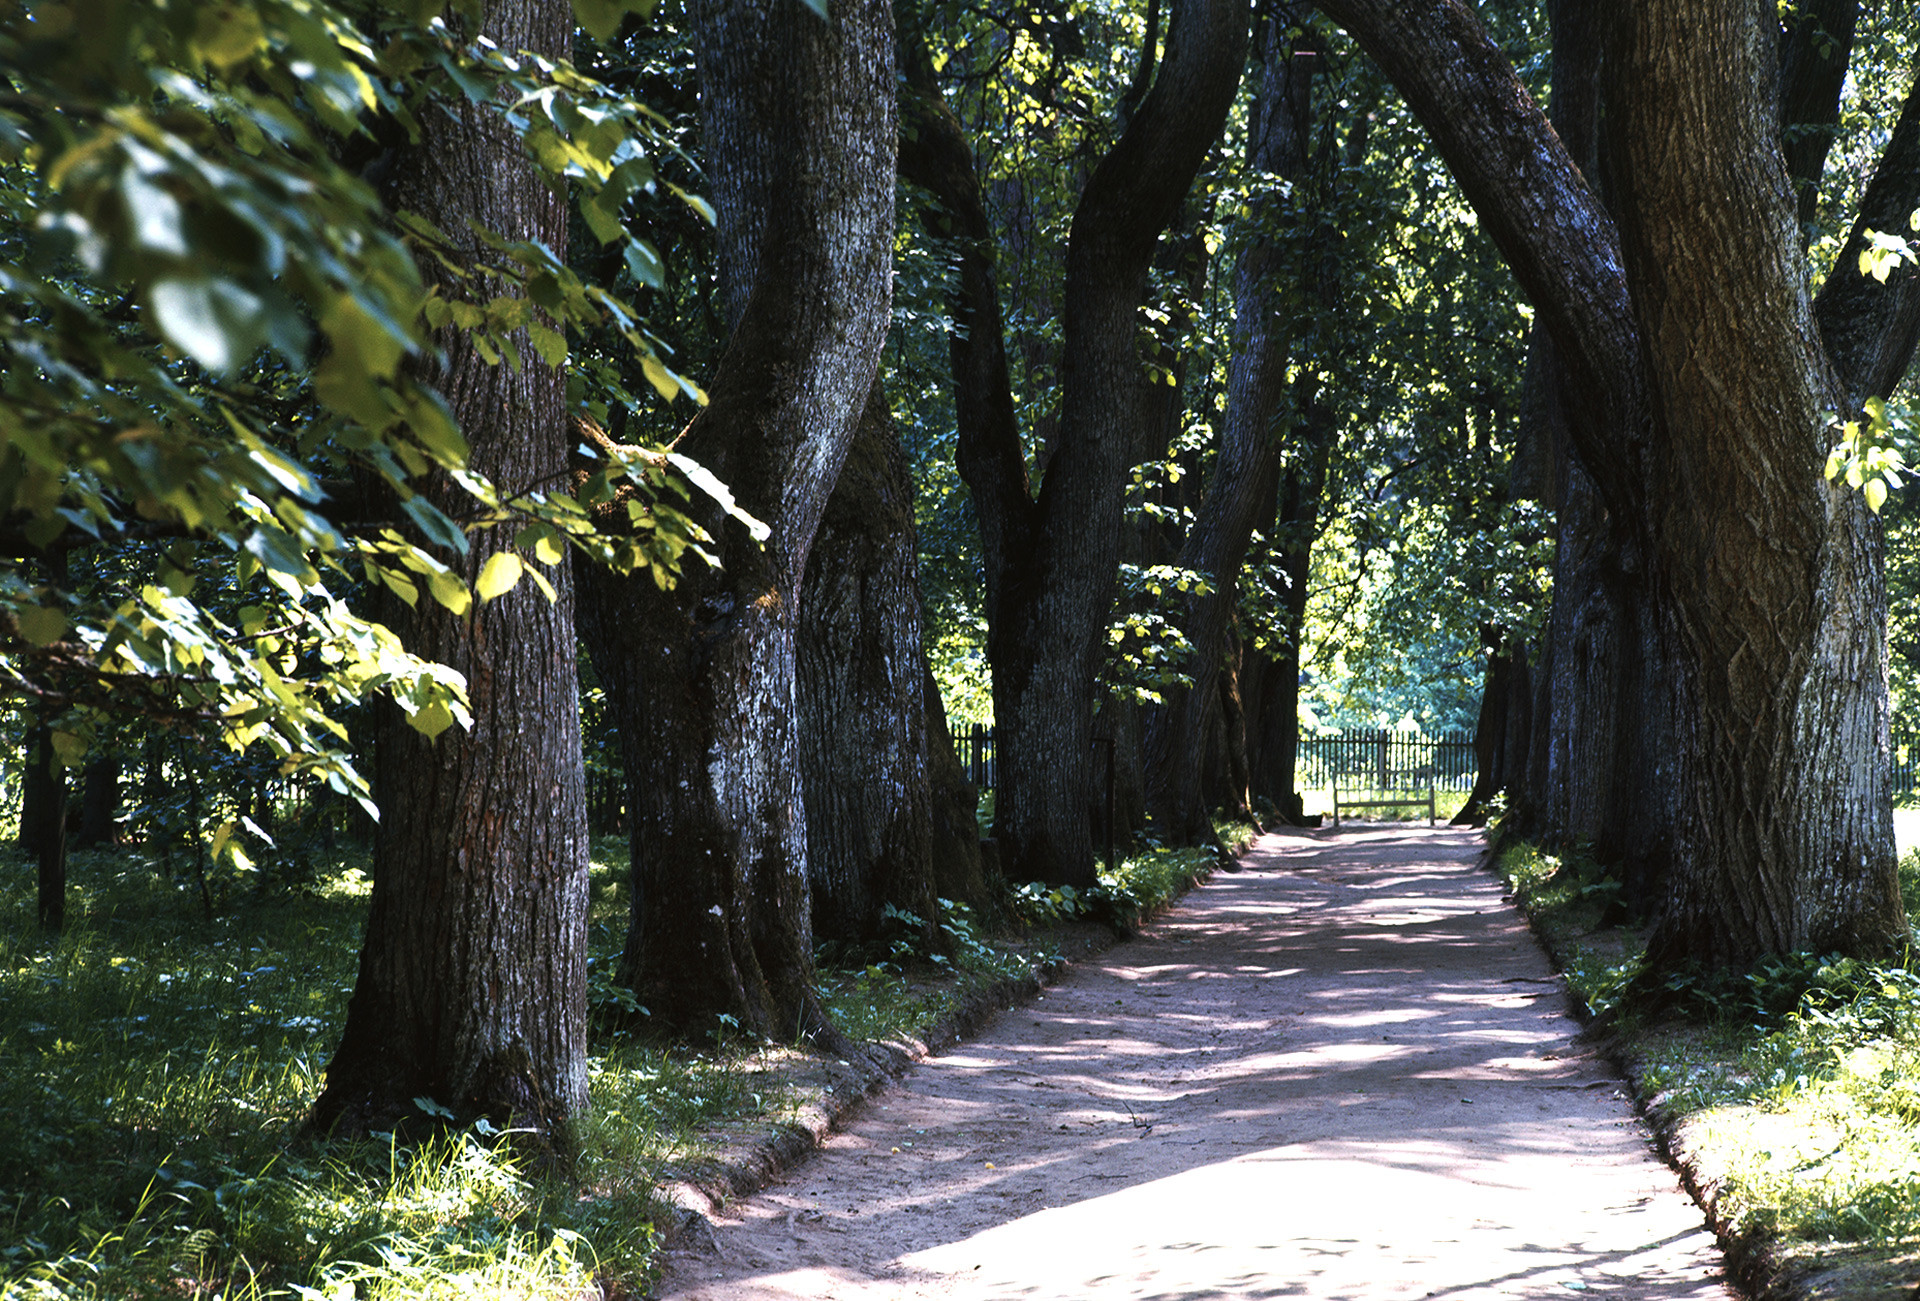 Linden alley in Pushkin museum-estate in Pskov Region called 'Kern' under the name of the poet's beloved woman